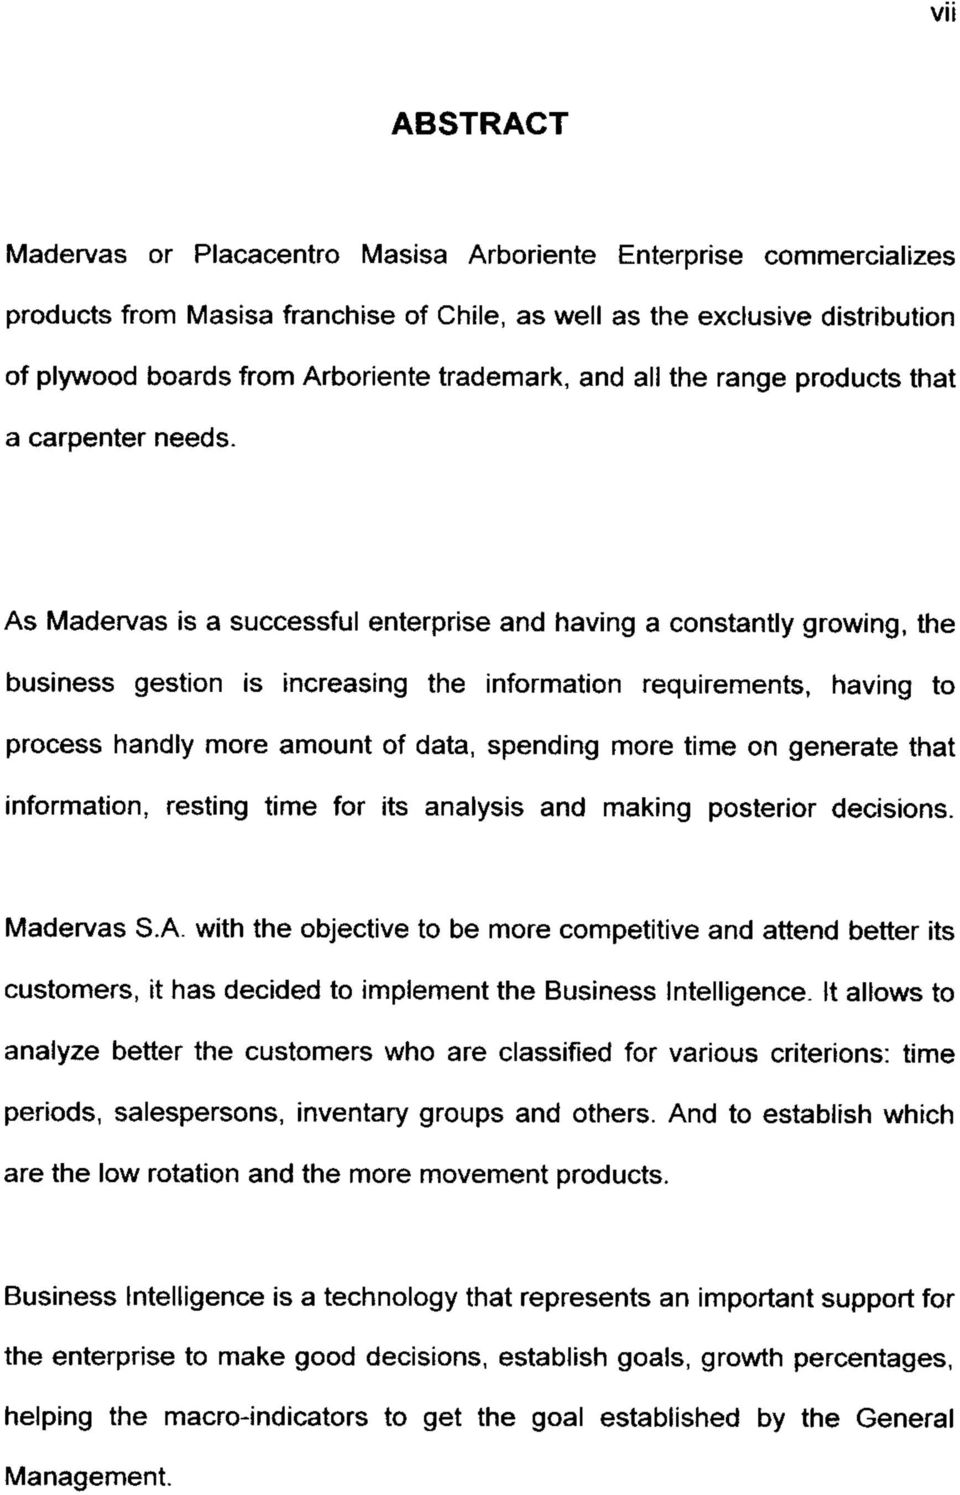 As Madervas is a successful enterprise and having a constantly growing, the business gestión is increasing the information requirements, having to process handly more amount of data, spending more